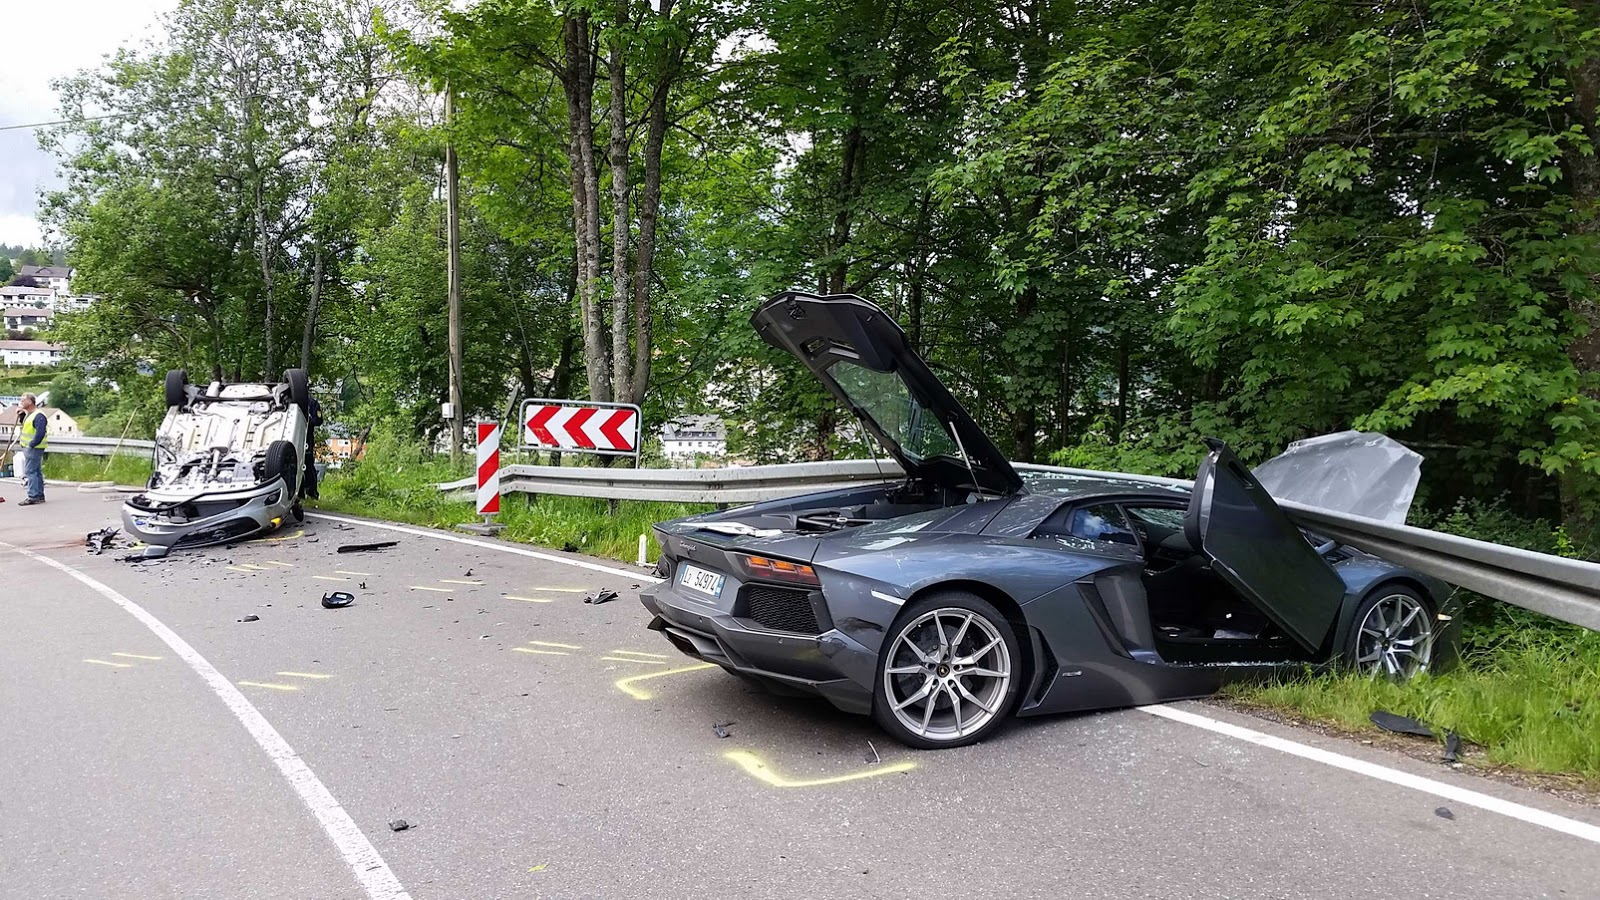 Crash splits Lamborghini in two